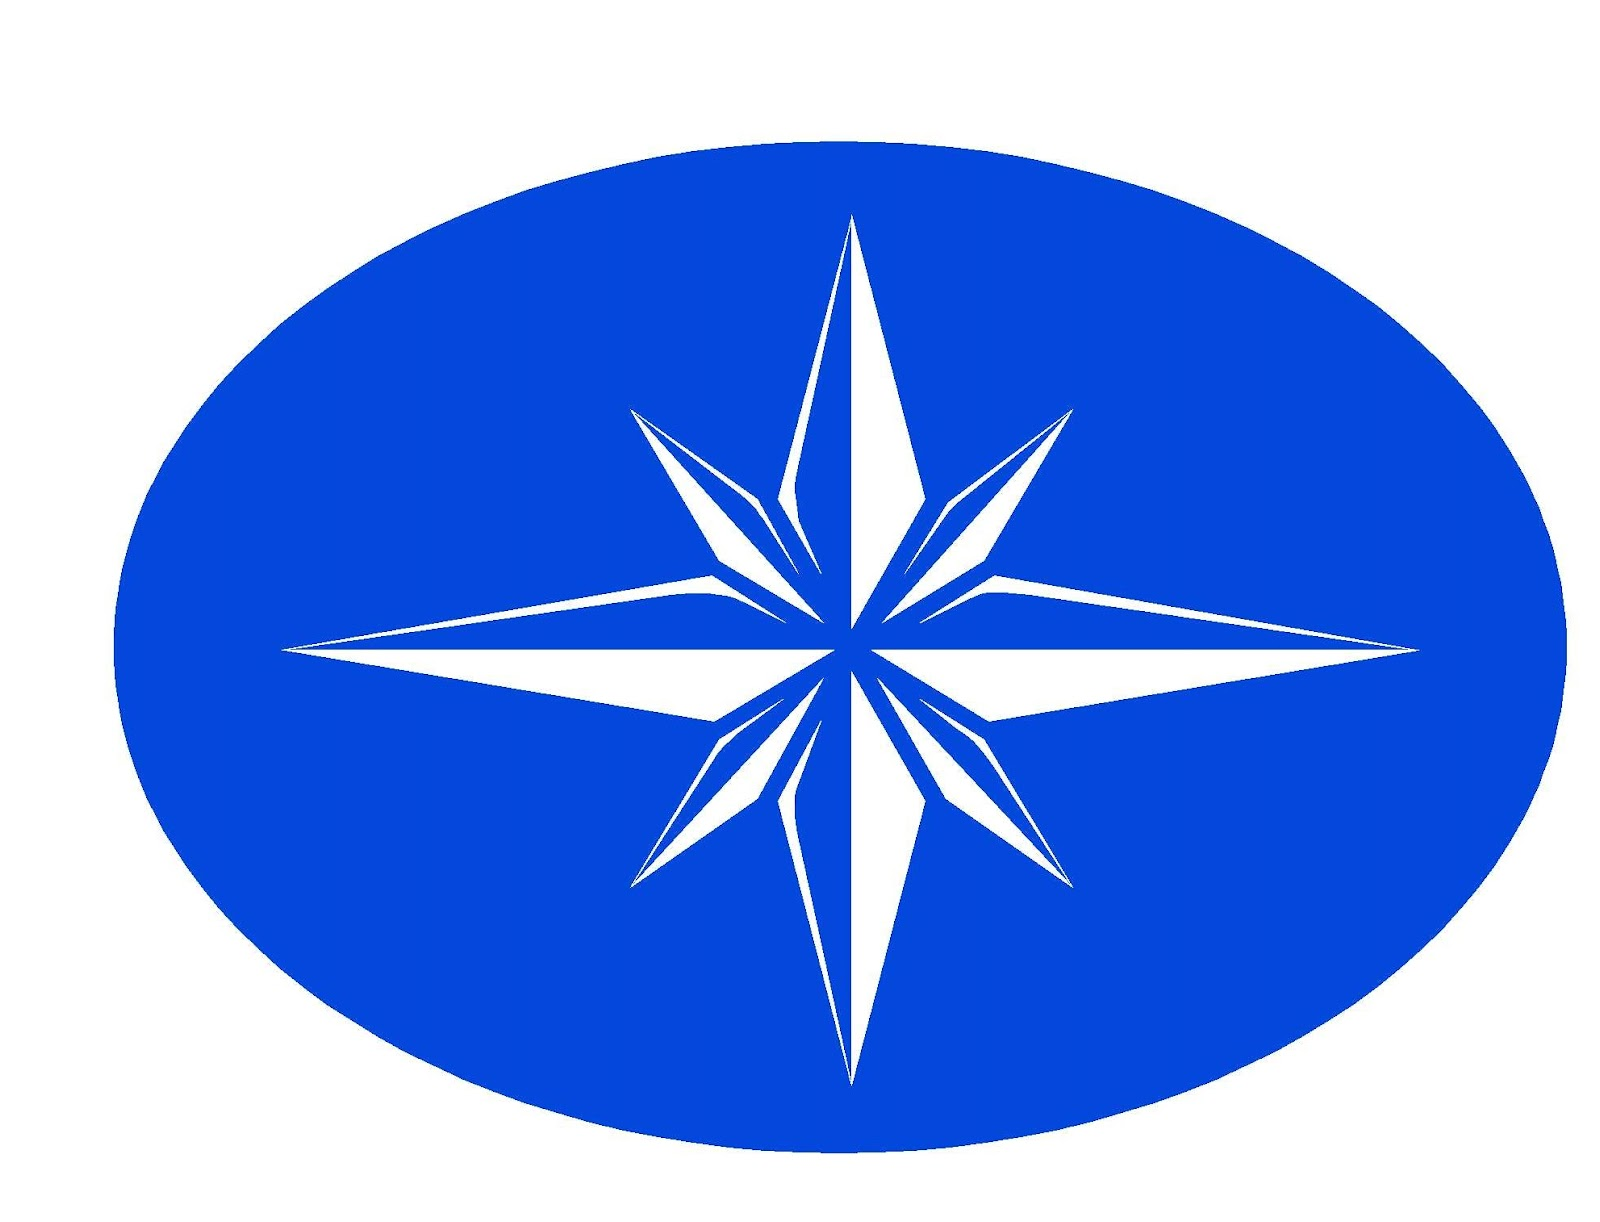 7078465 LOGO-POLARIS STAR $4.97